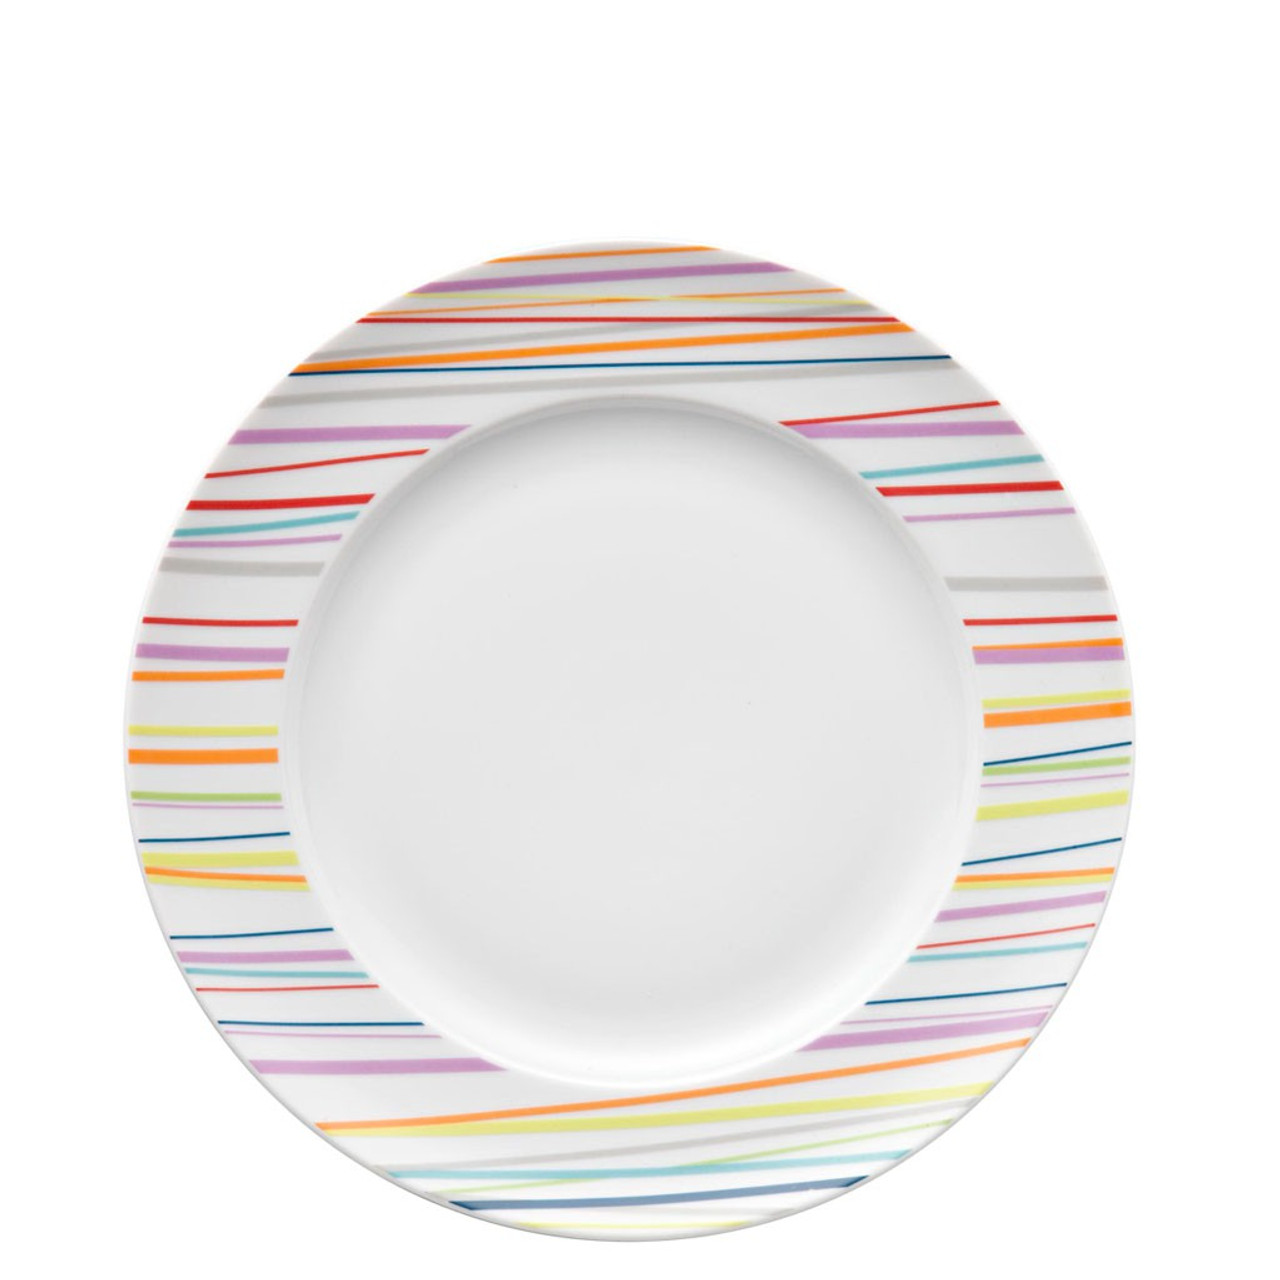 Dinner Plate 10 1/2 inch | Thomas Sunny Day Stripes  sc 1 st  Rosenthal & Dinner Plate 10 1/2 inch | Sunny Day Stripes| Rosenthal Shop